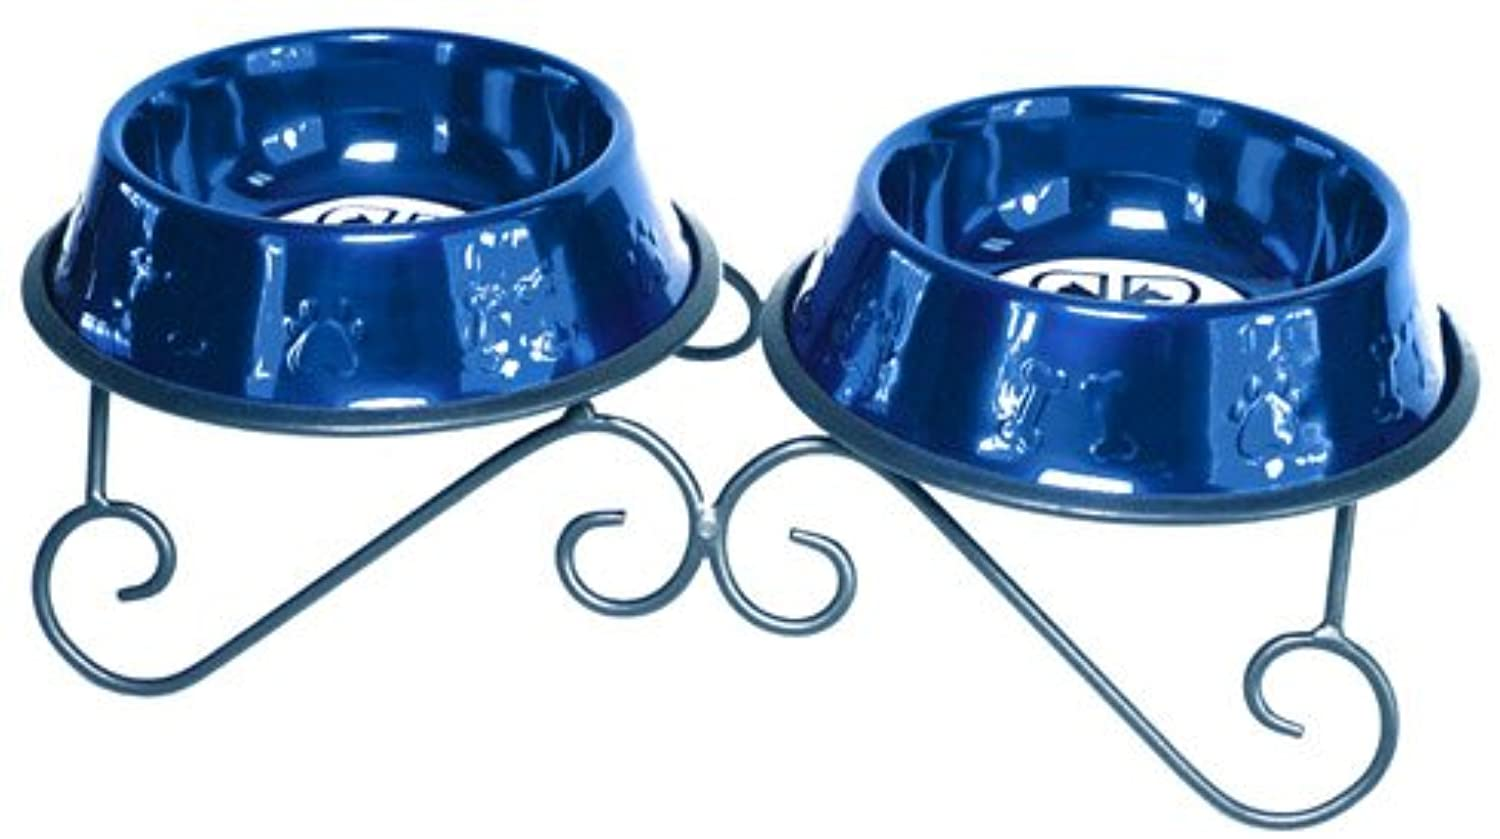 Platino Animali domestici 24Ounce Double Diner Stand with 2 Bowls, Sapphire Blue